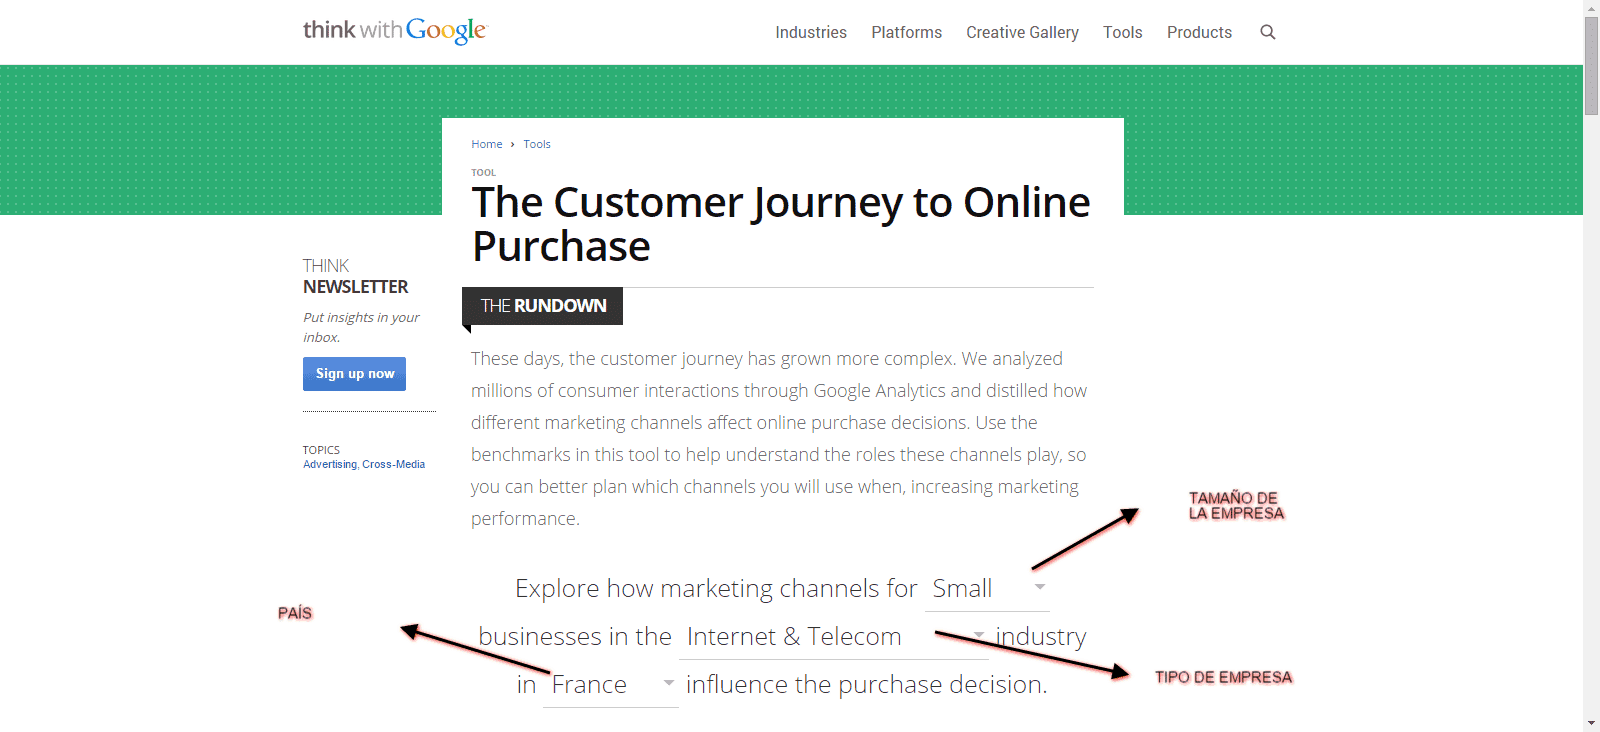 The Customer Journey to Online Purchase (El camino del usuario)